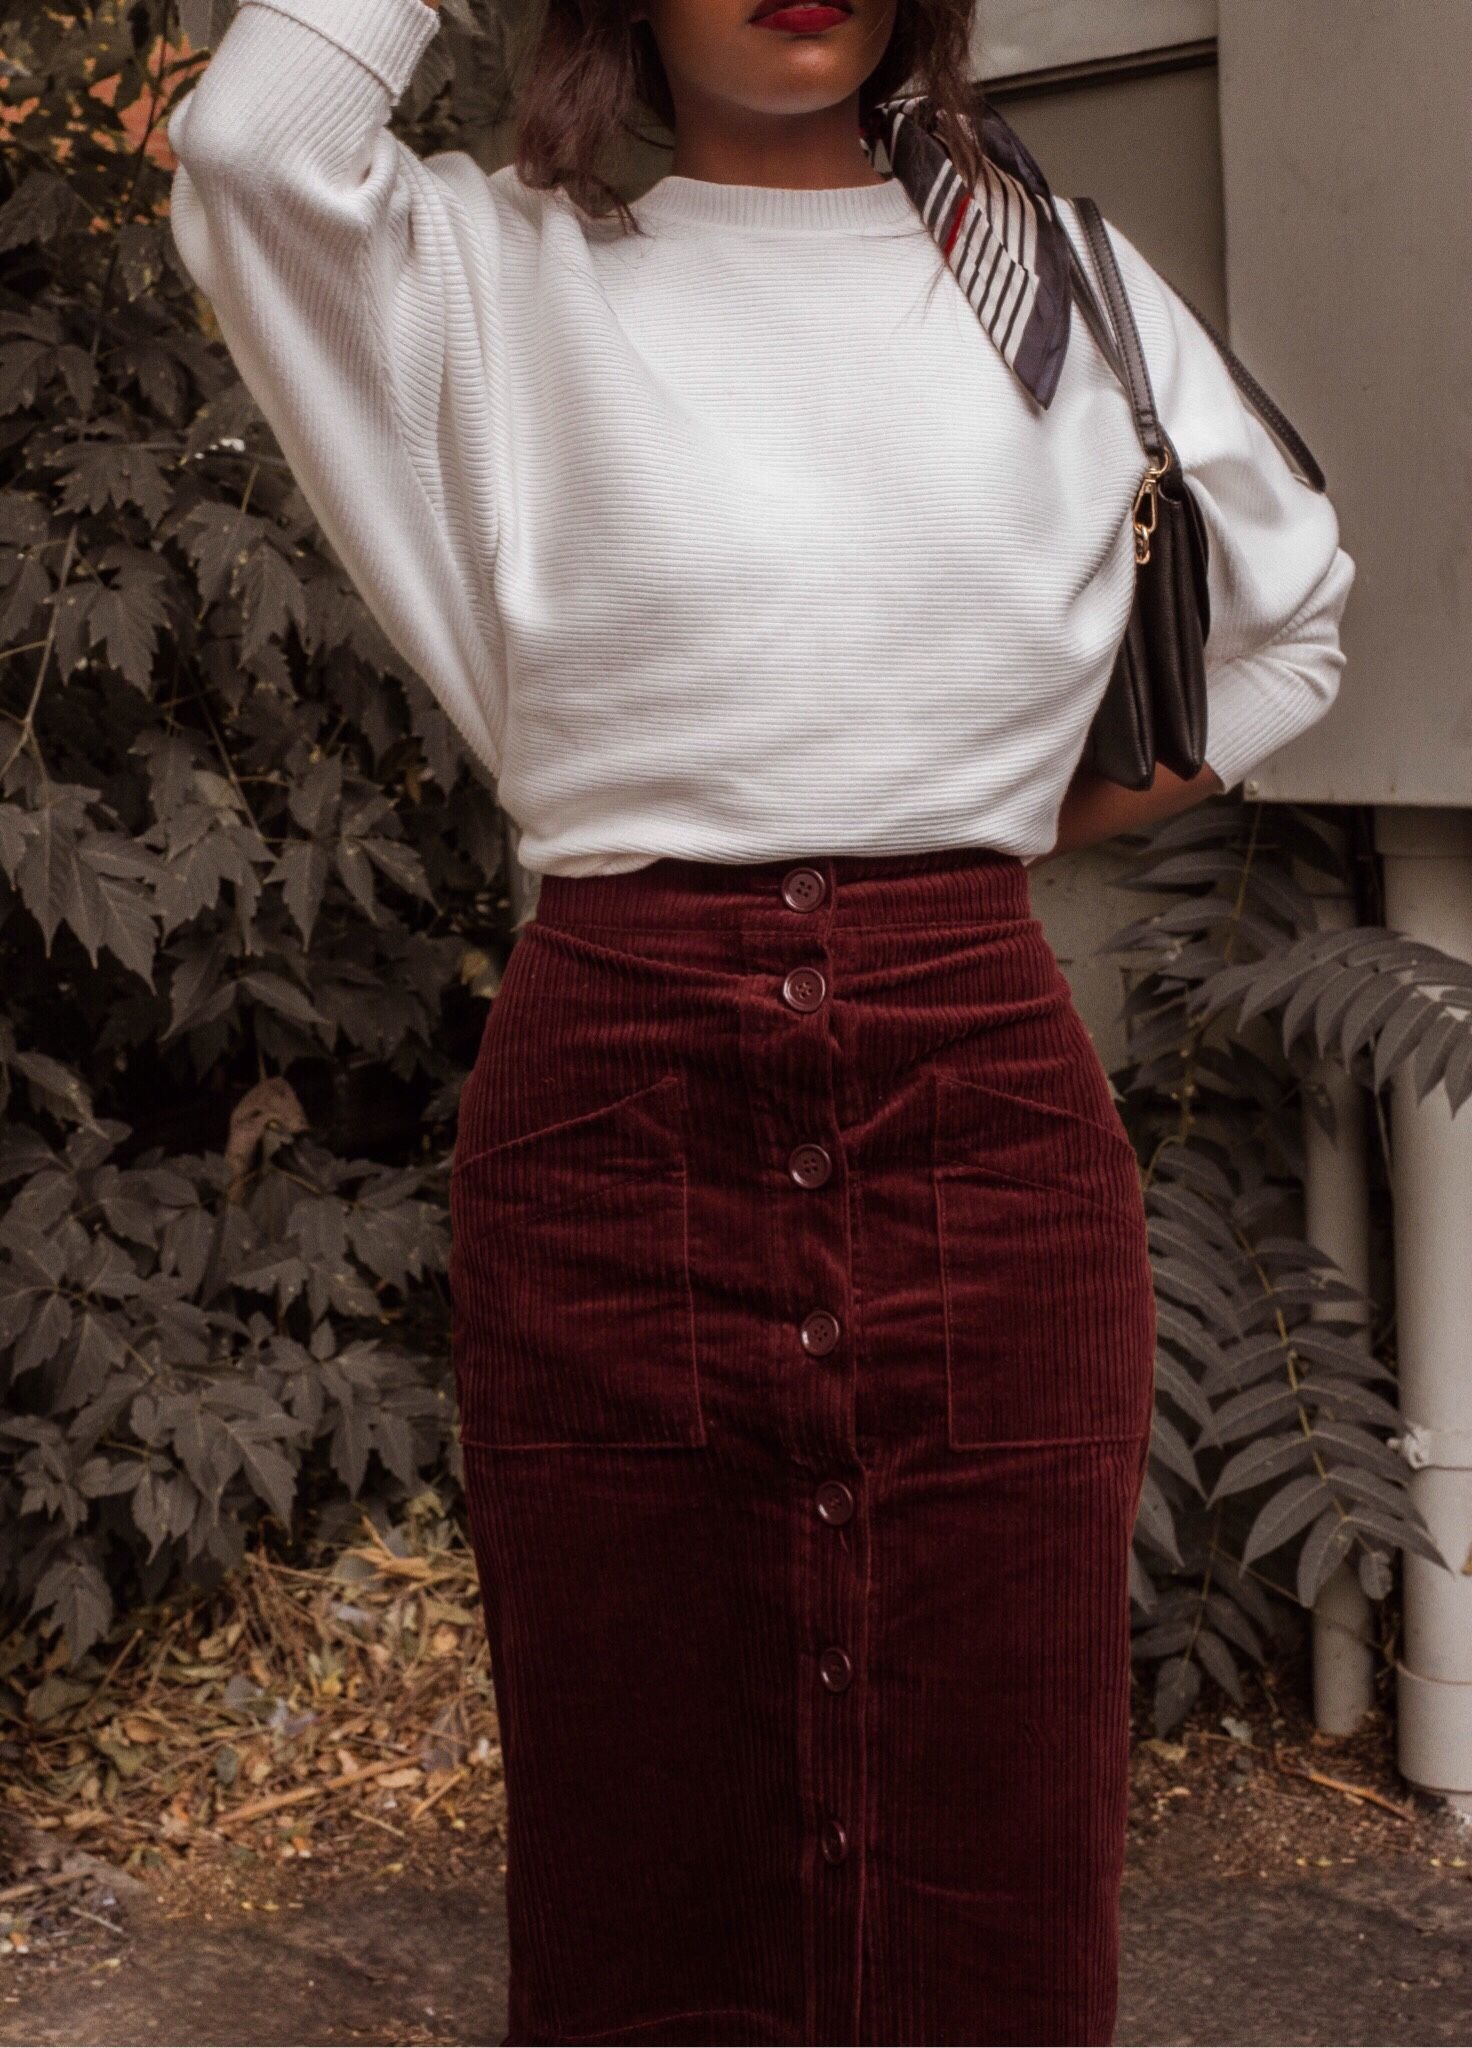 c7d1ee89047da The Corduroy Skirt I ll Be Wearing Throughout Fall © CetteDame 2018